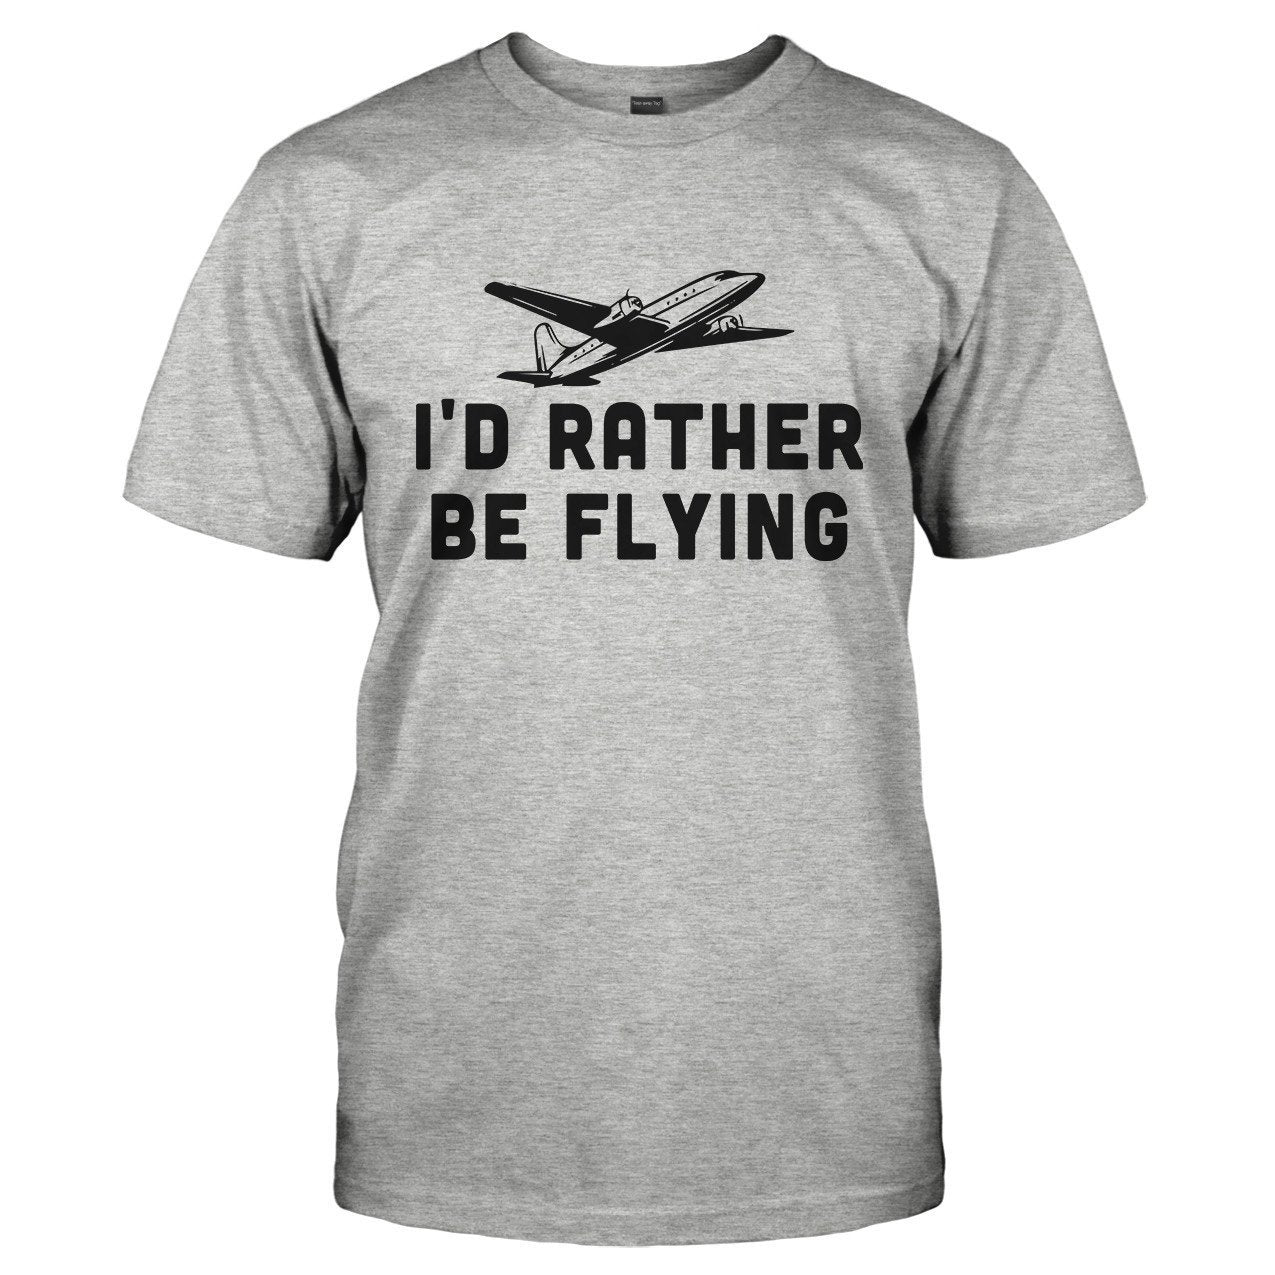 I'd Rather Be Flying - T Shirt